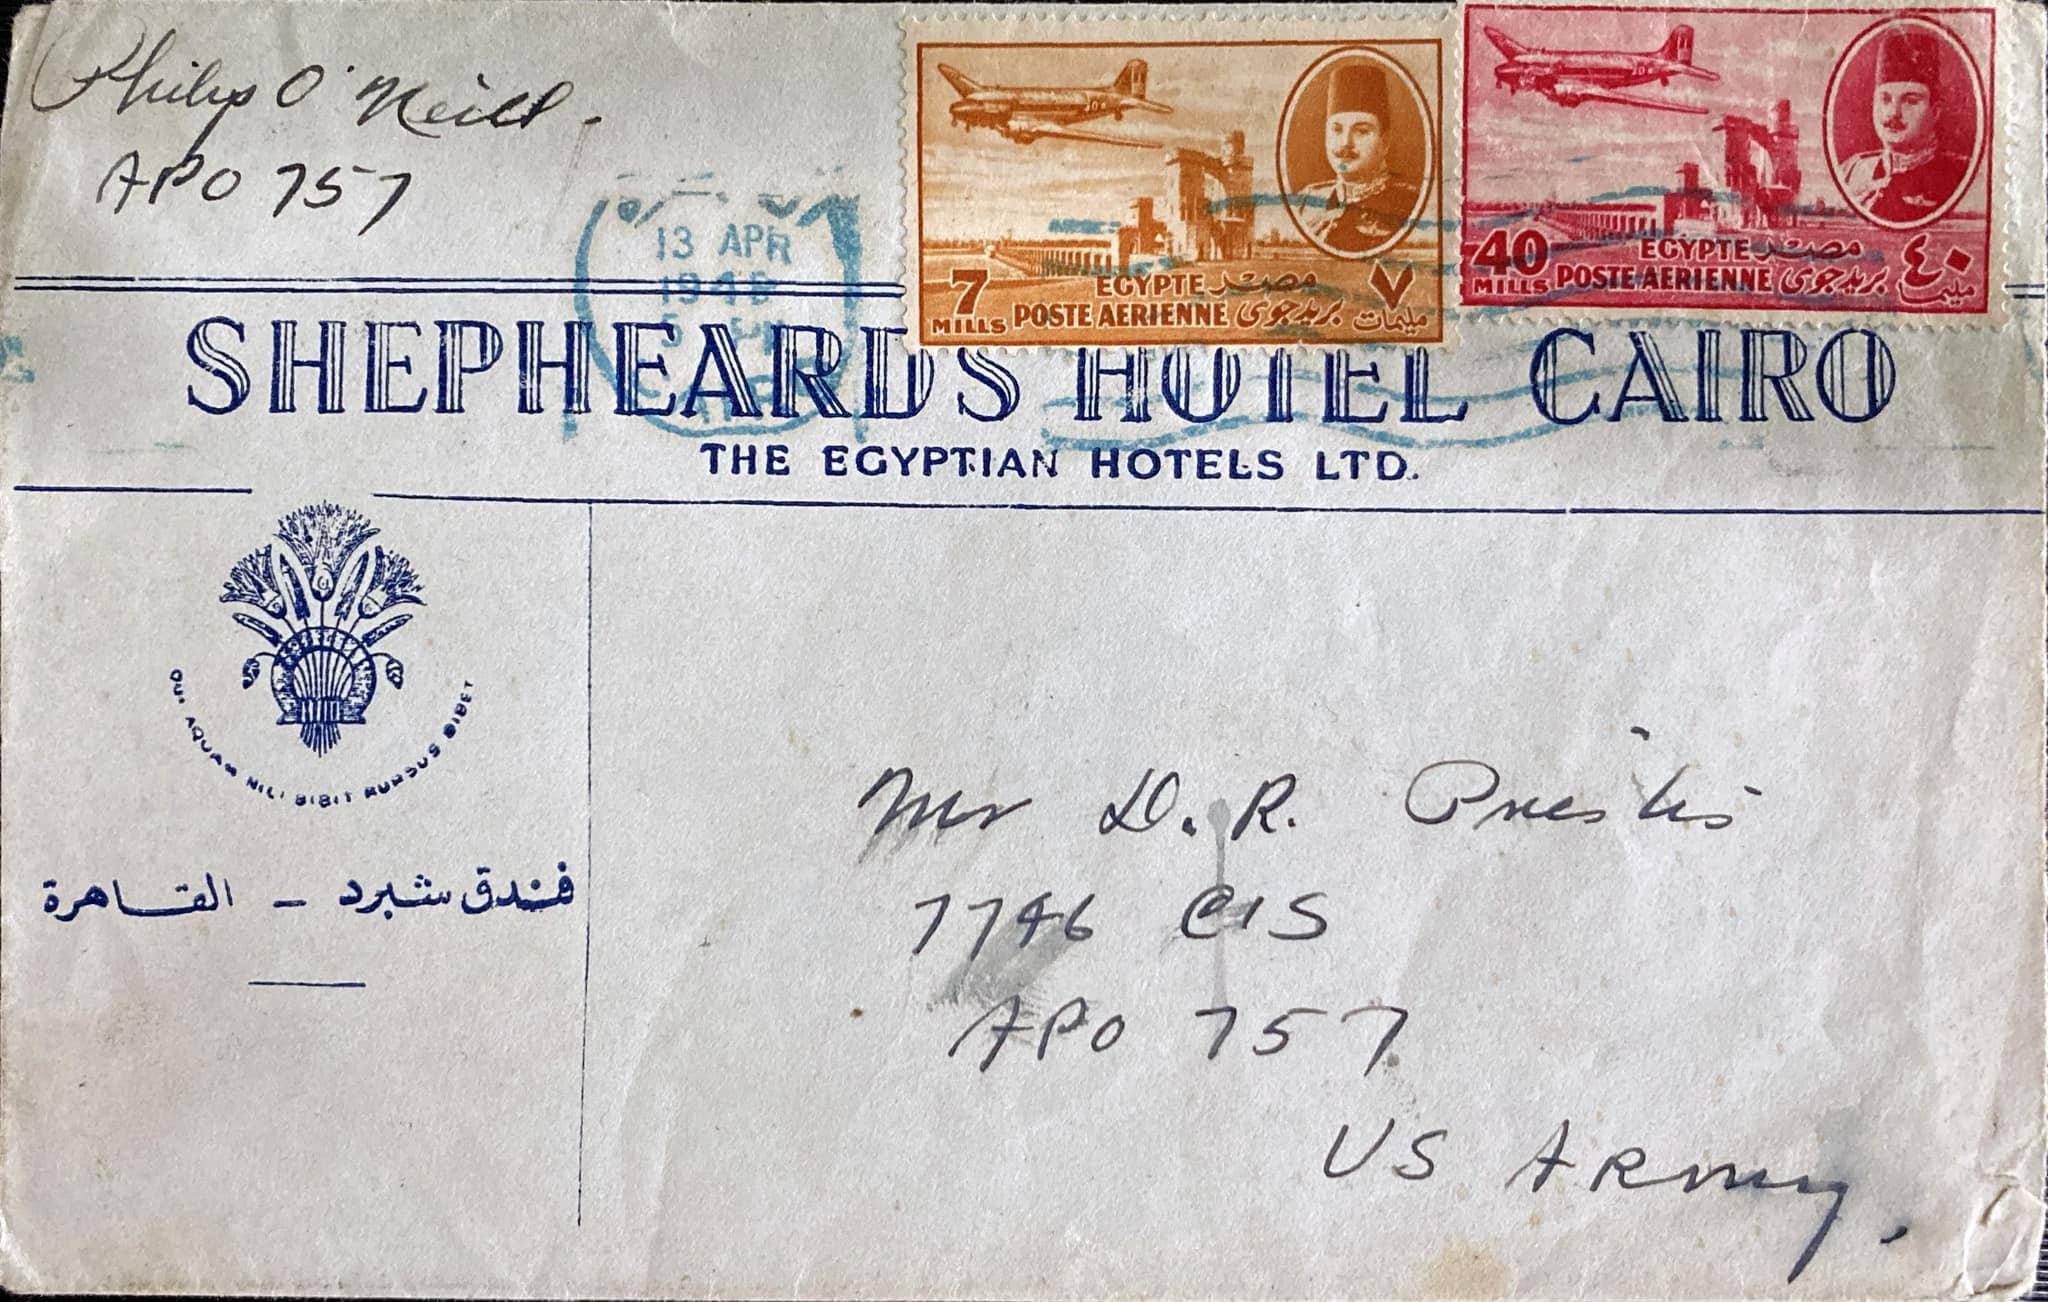 this is a letter sent from Egypt to 7746 CIS at APO 757 in Frankfurt. I am trying to identify the sender & addressee if at all possible